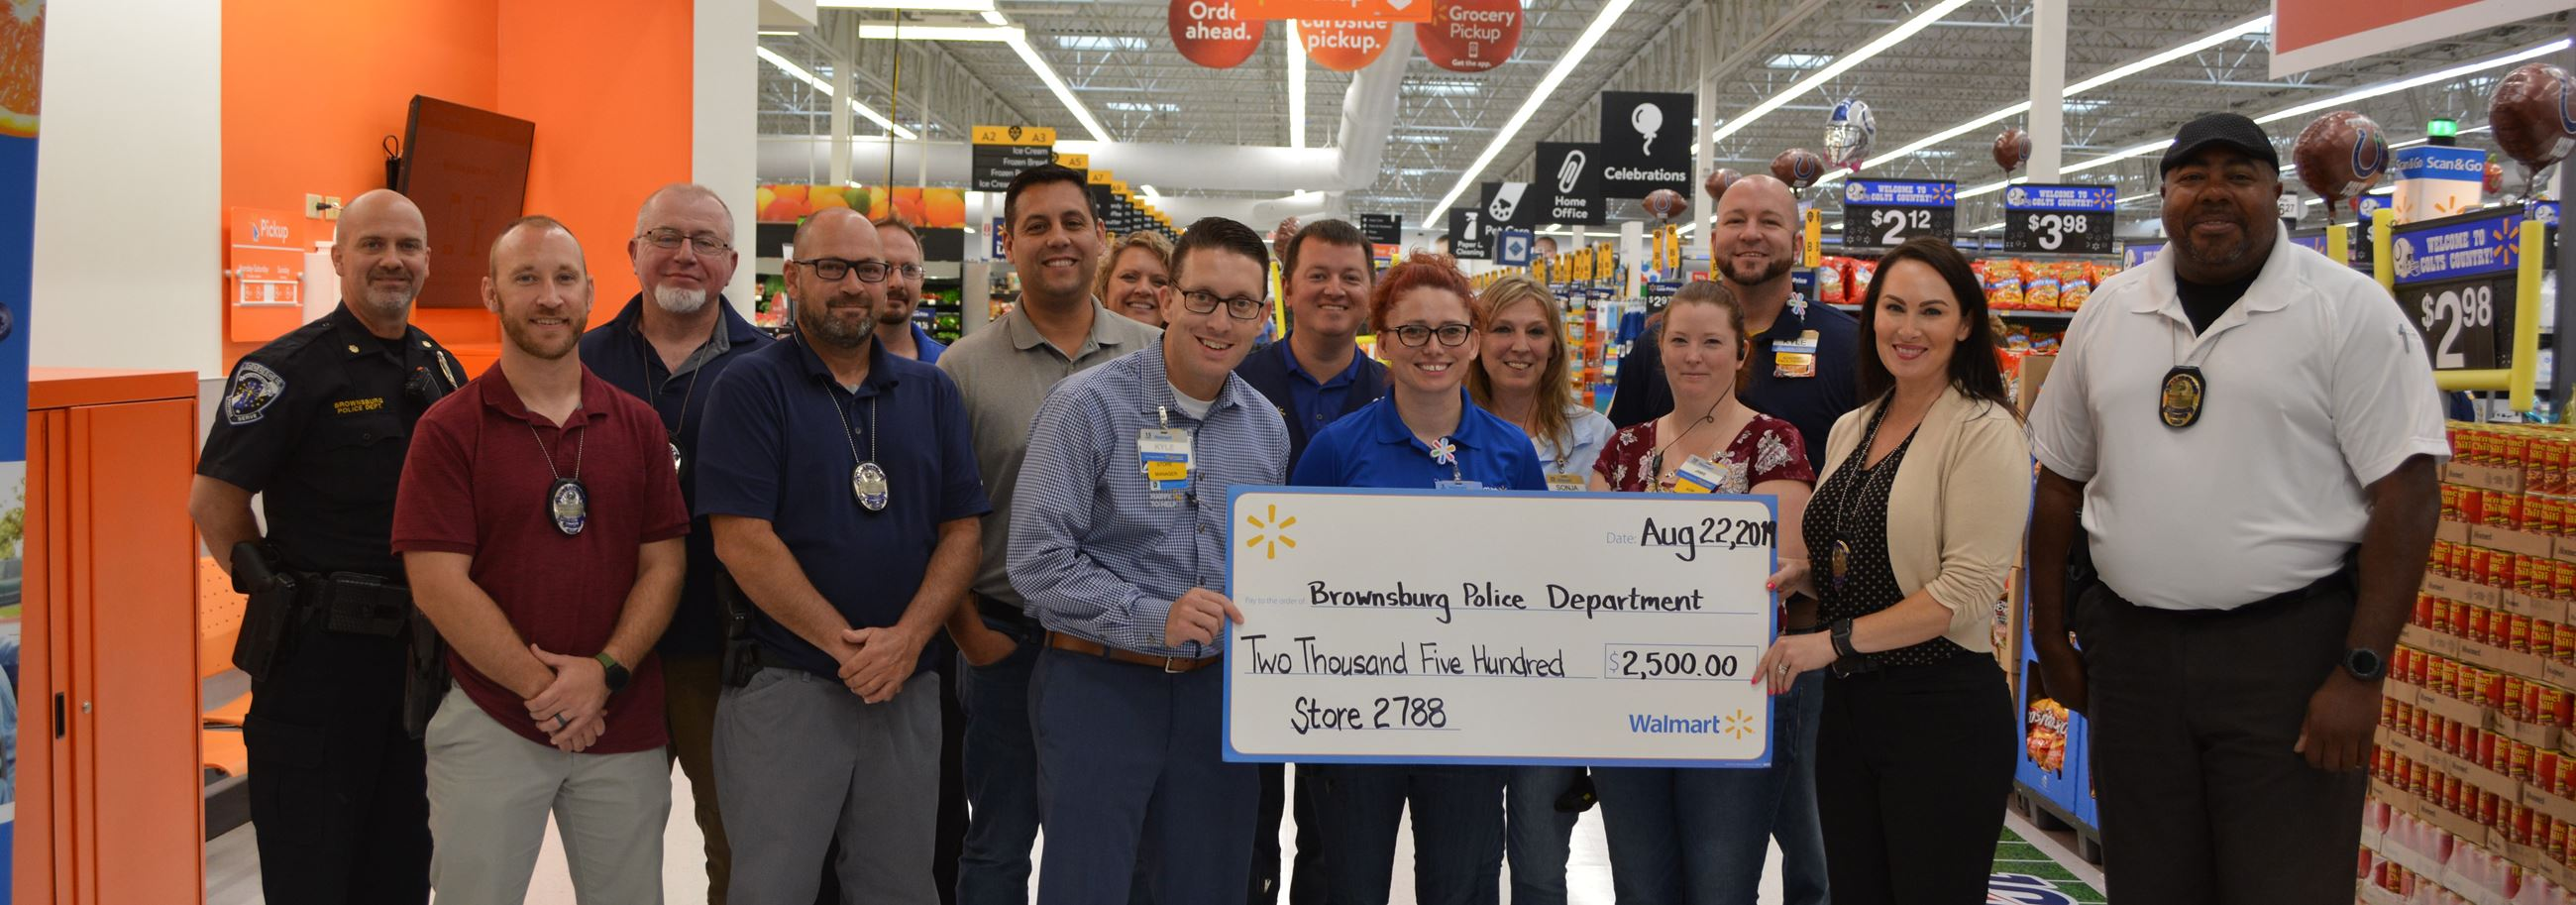 Donation From Wal-Mart To Investigations Unit